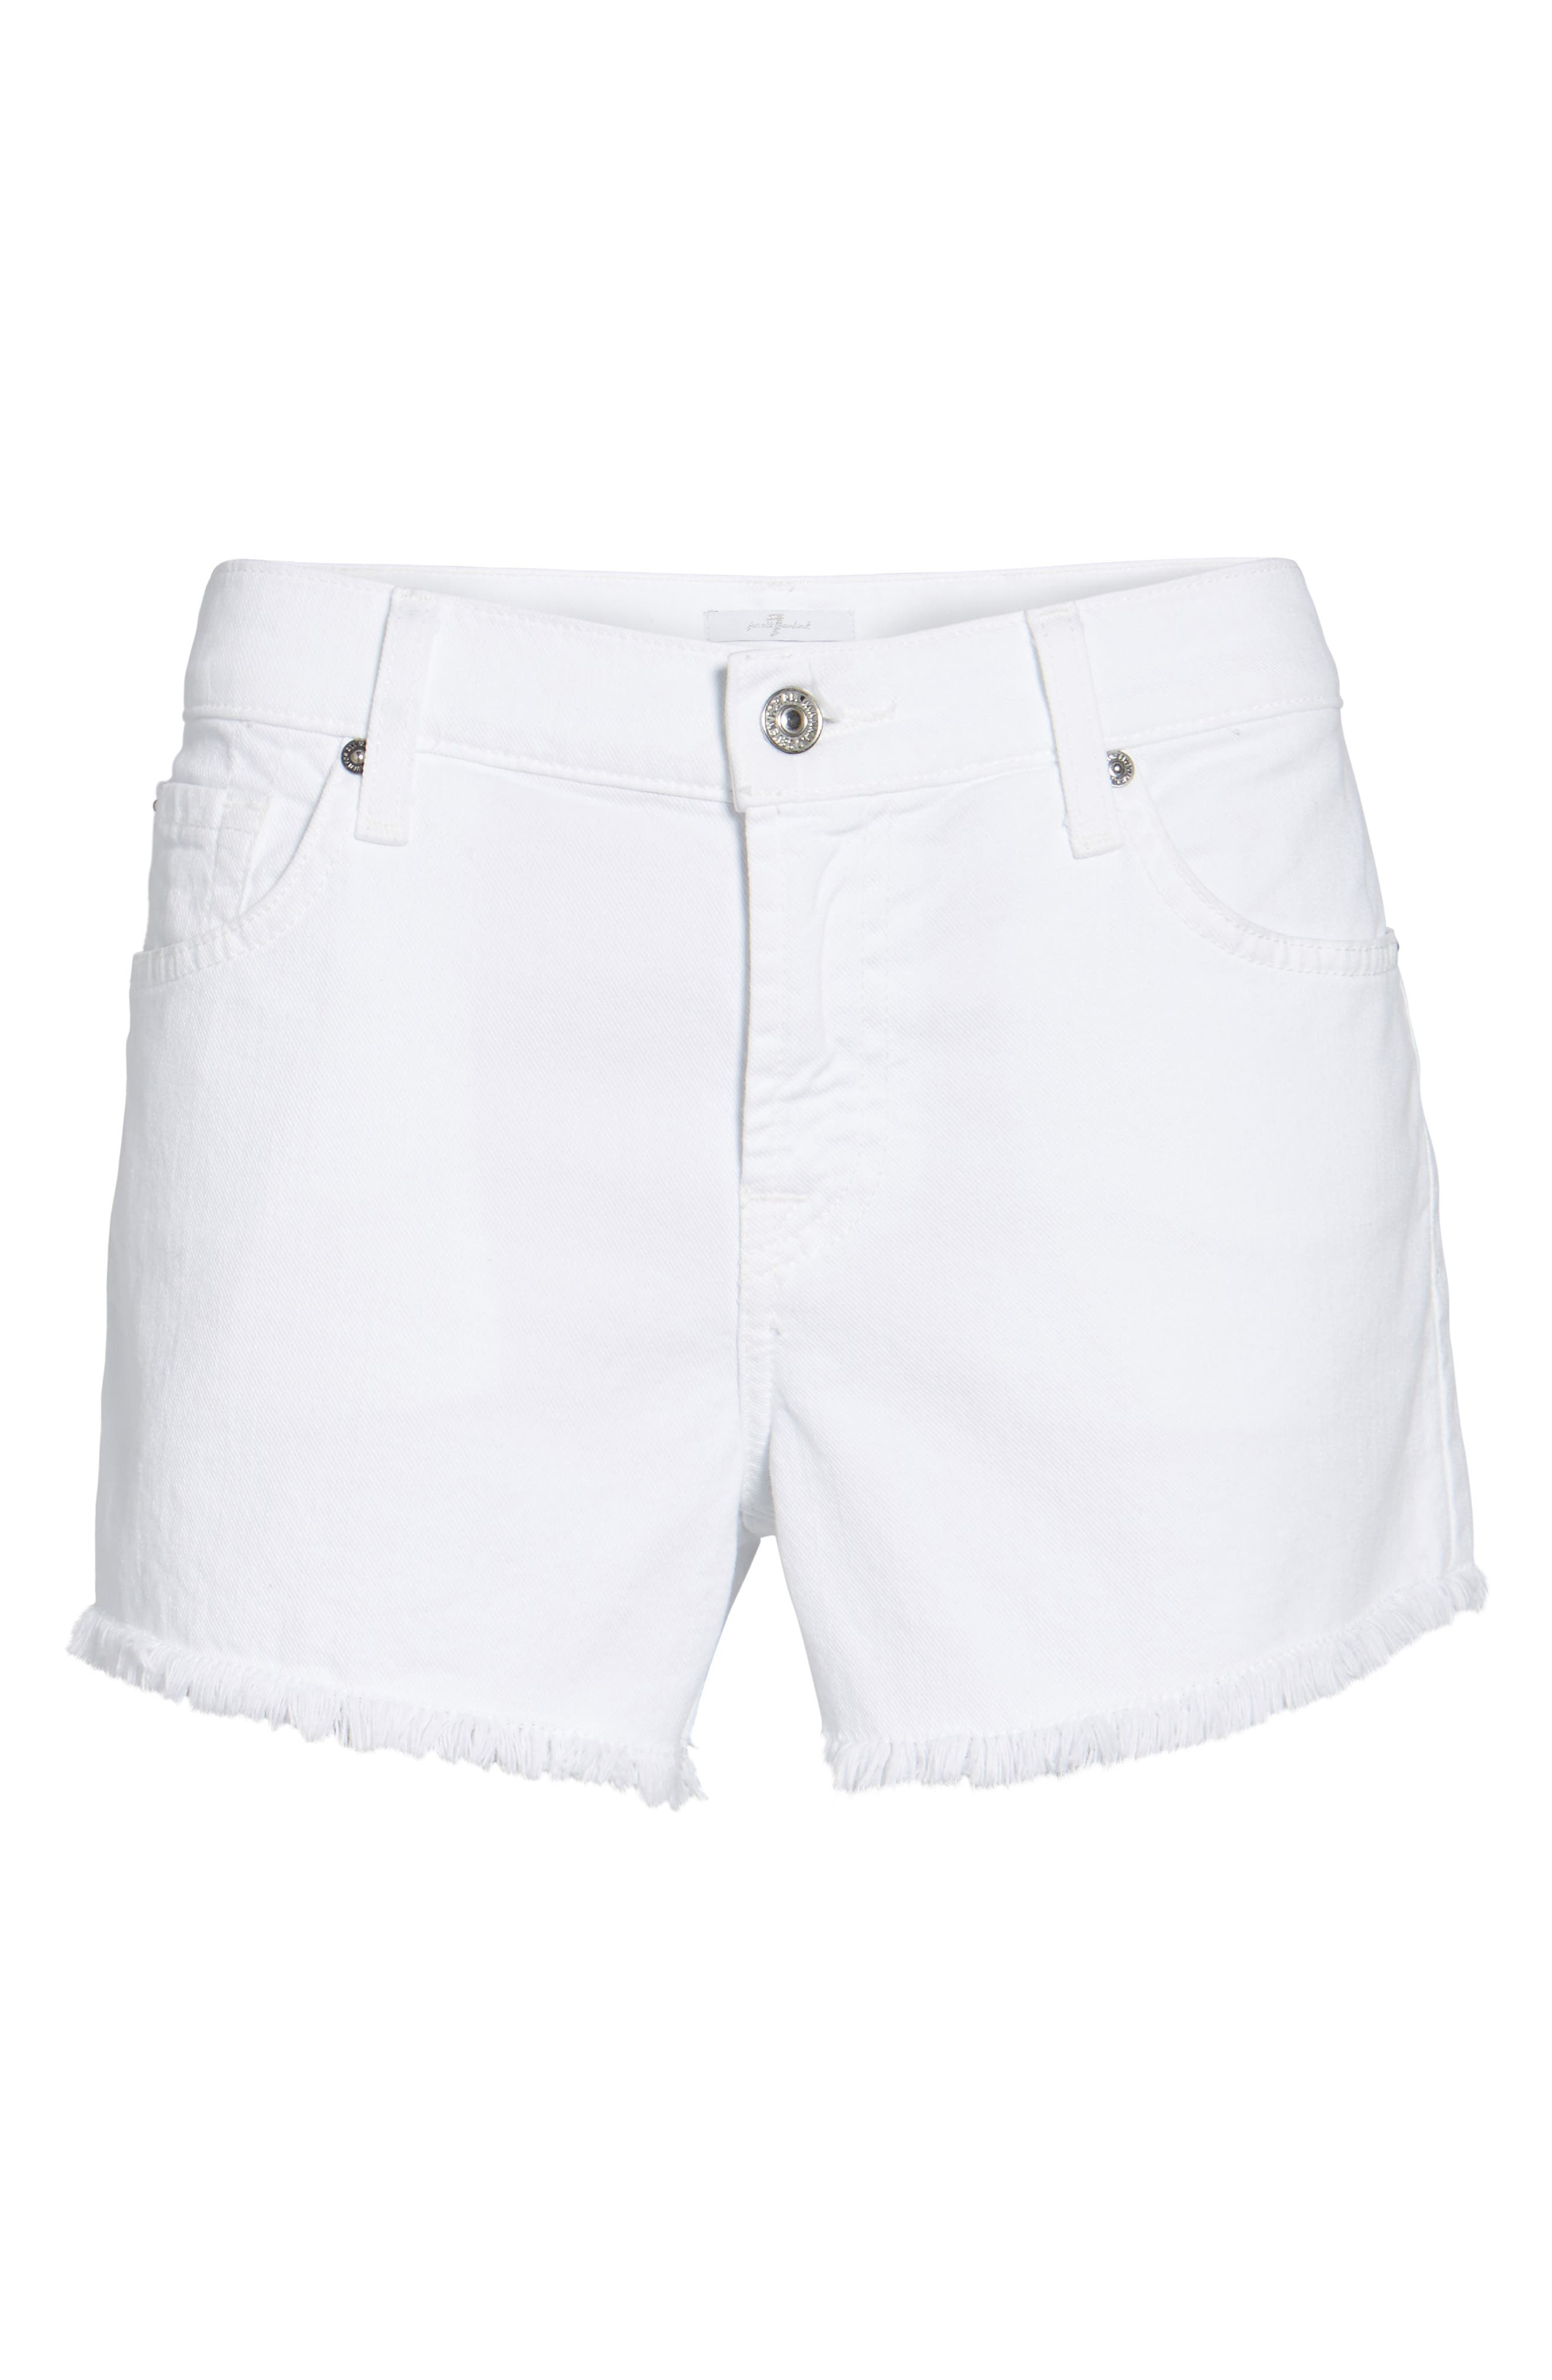 7 FOR ALL MANKIND<SUP>®</SUP>, Cutoff Denim Shorts, Alternate thumbnail 7, color, CLEAN WHITE